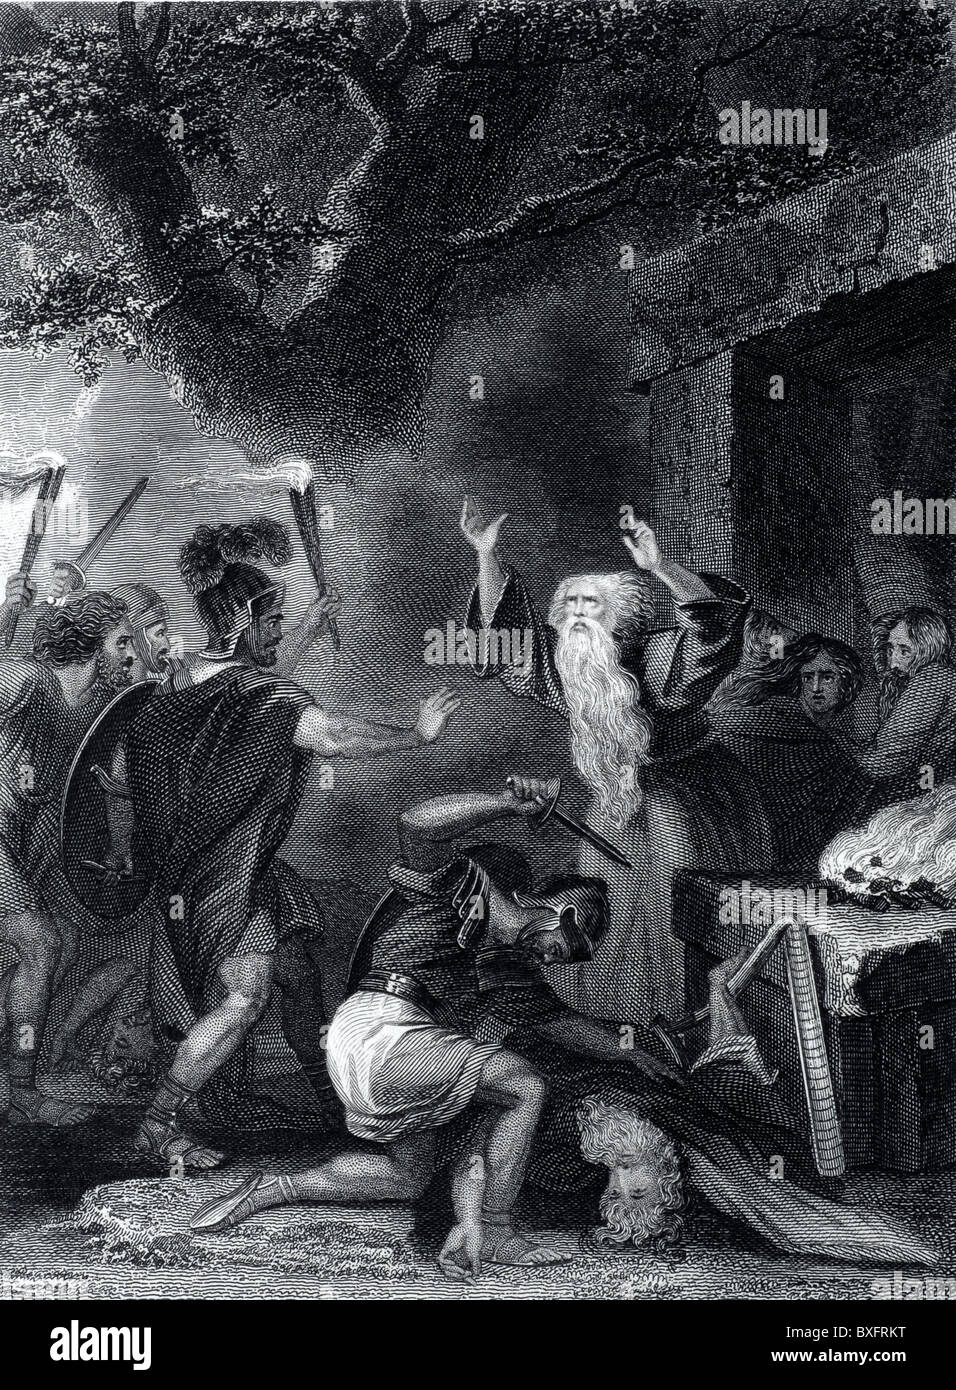 roman soldiers massacre the druids in england after the roman